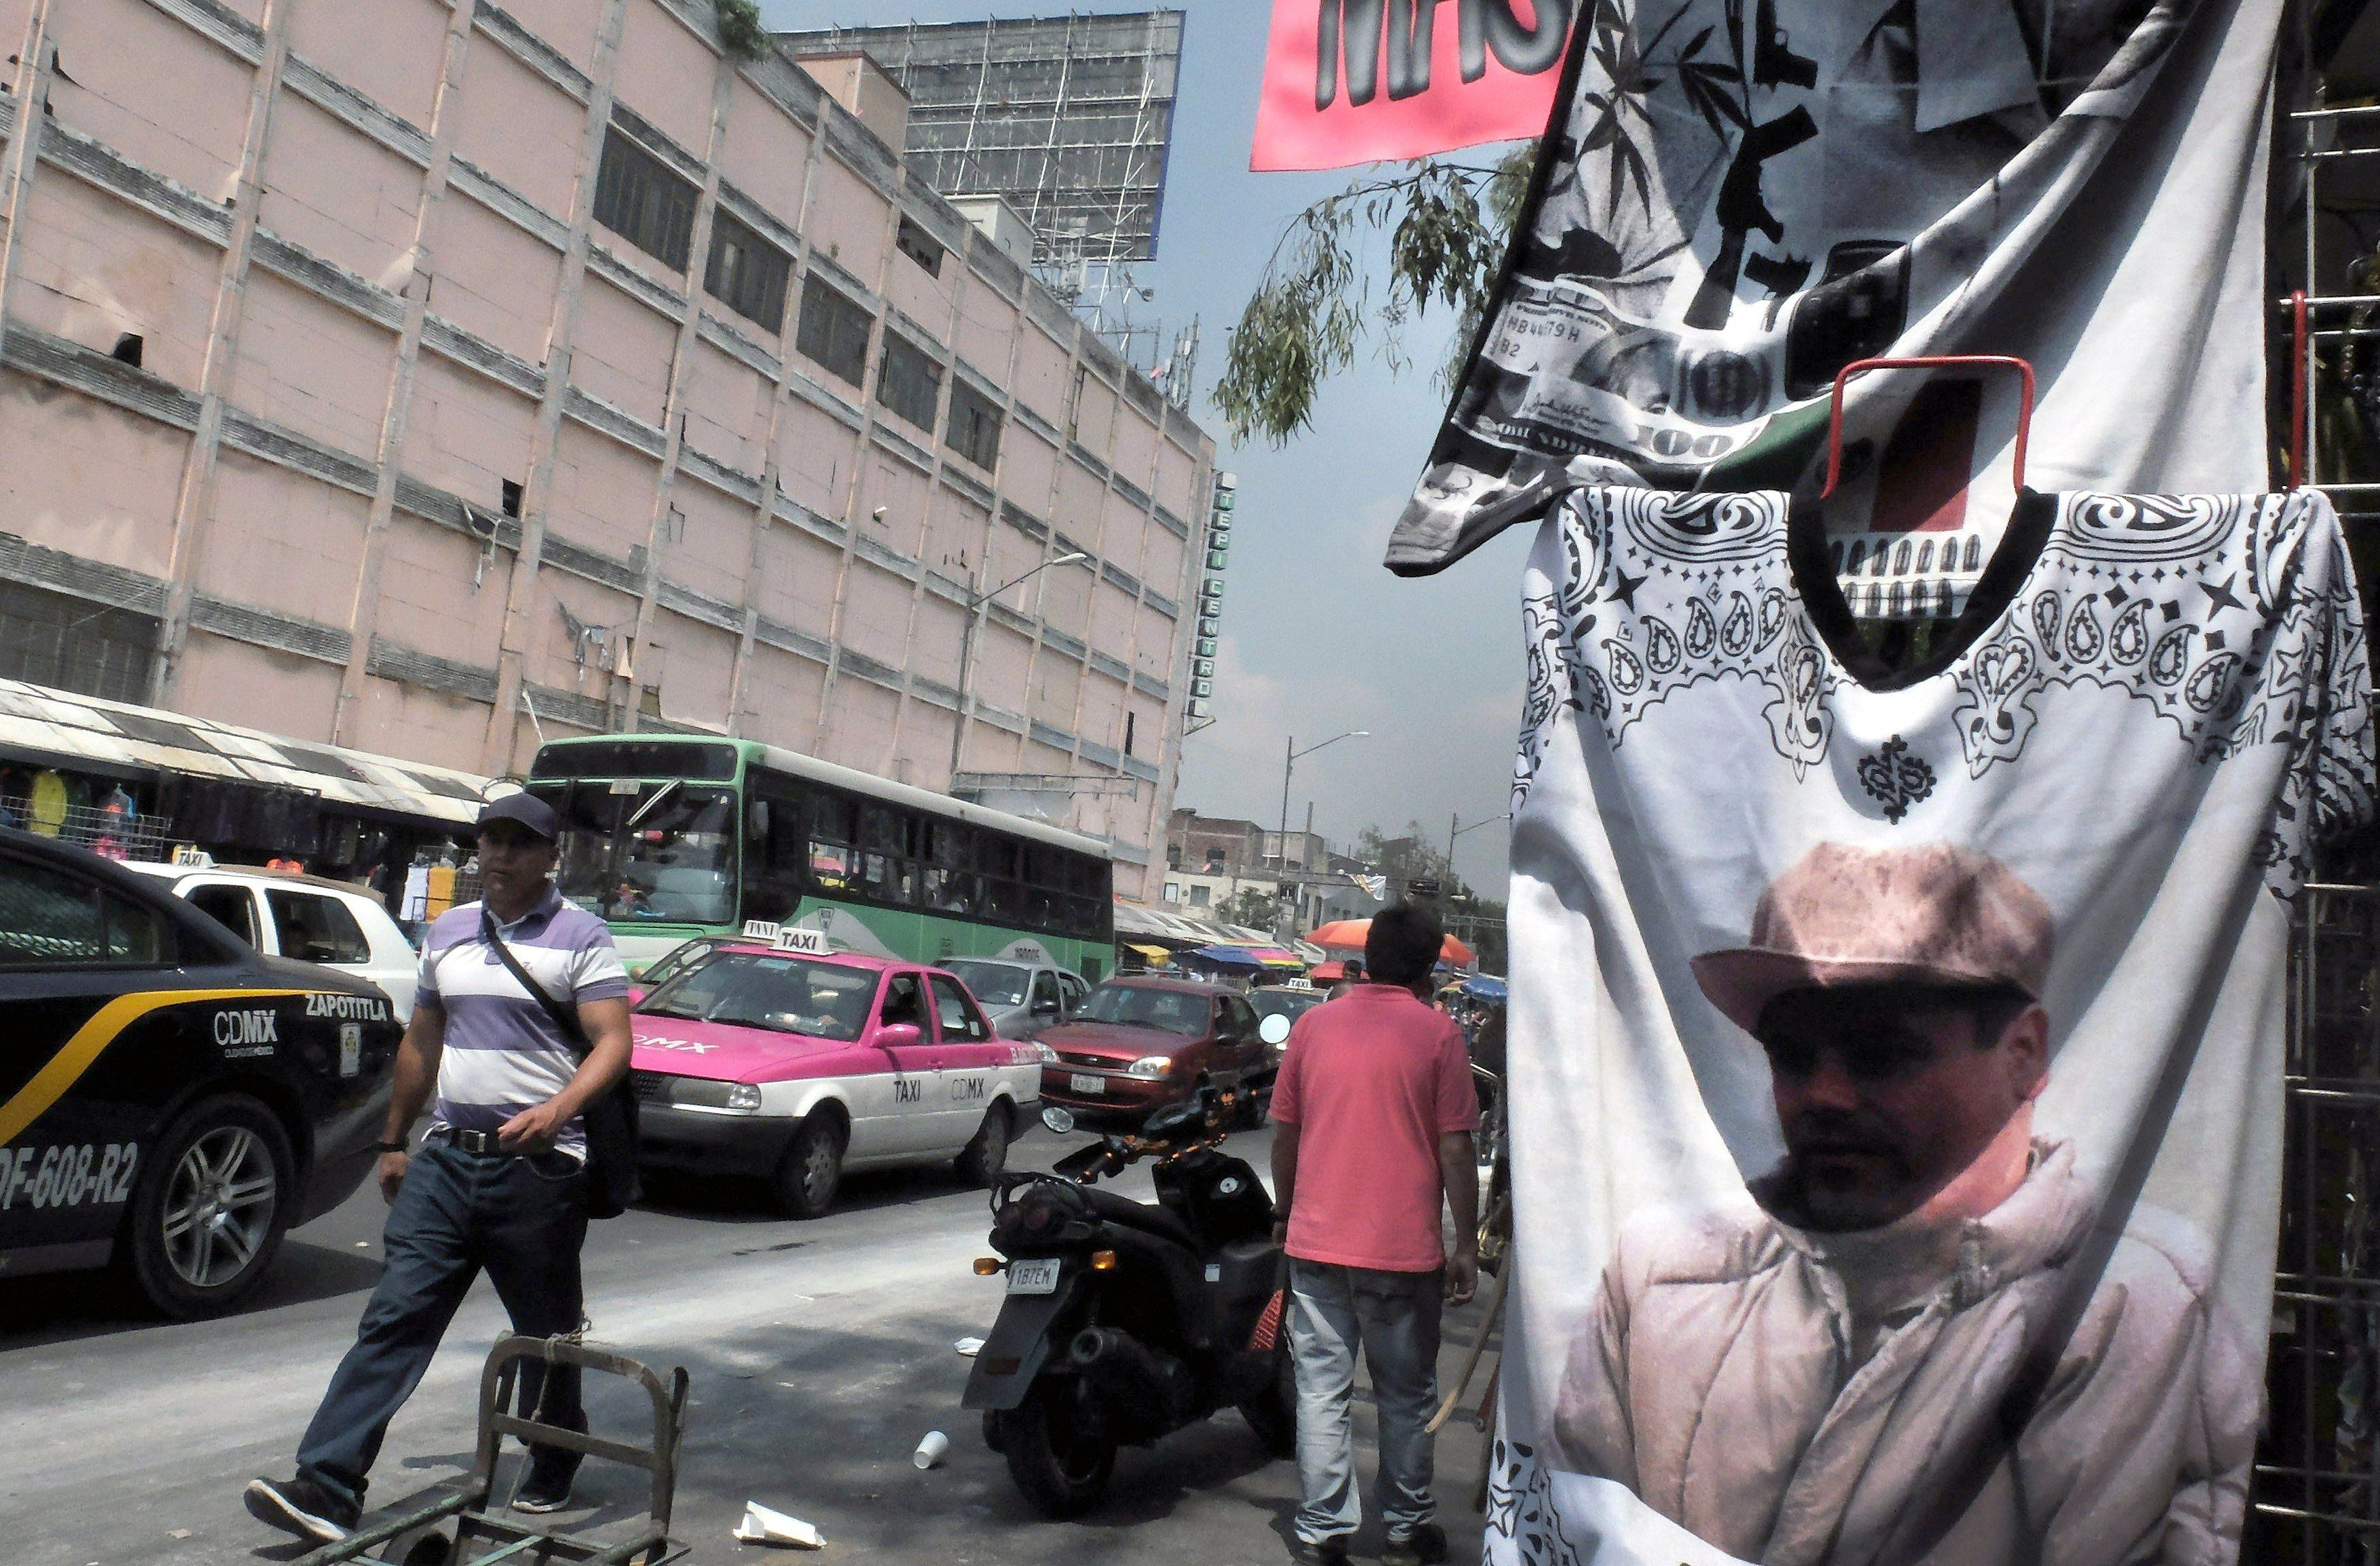 """<span class='image-component__caption' itemprop=""""caption"""">Mexican drug lord Joaquín """"El Chapo"""" Guzmán, pictured here on a T-shirt in Mexico City, is still at large after escaping from his jail cell in July.</span>"""